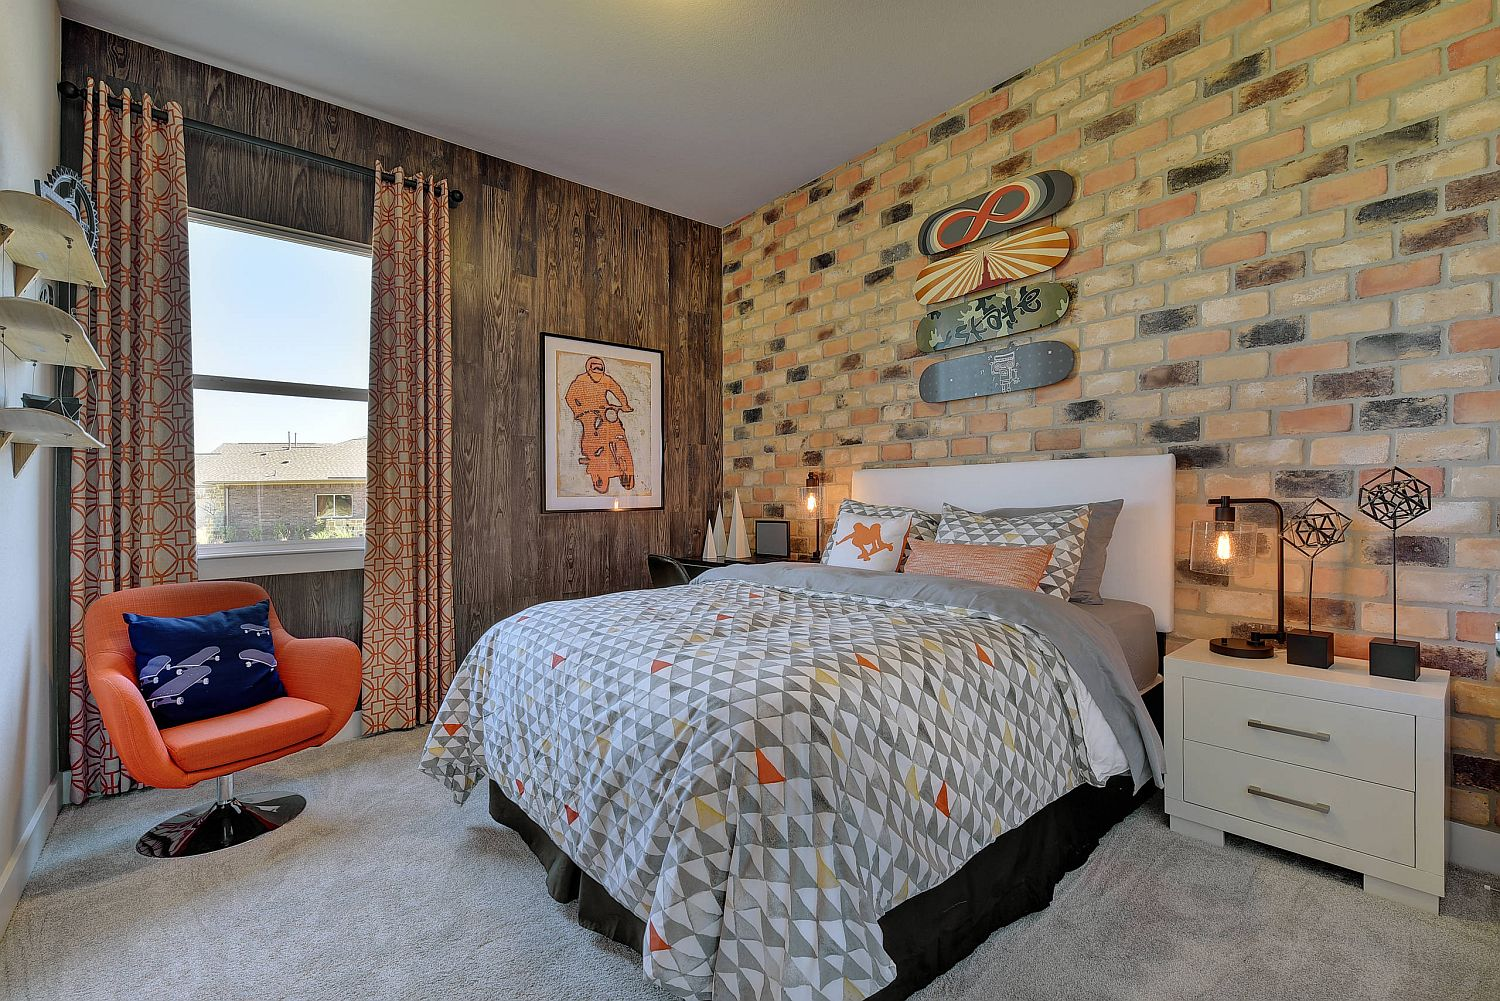 Brick wallpaper offers perfect alternative to faux brick tiles in the bedroom